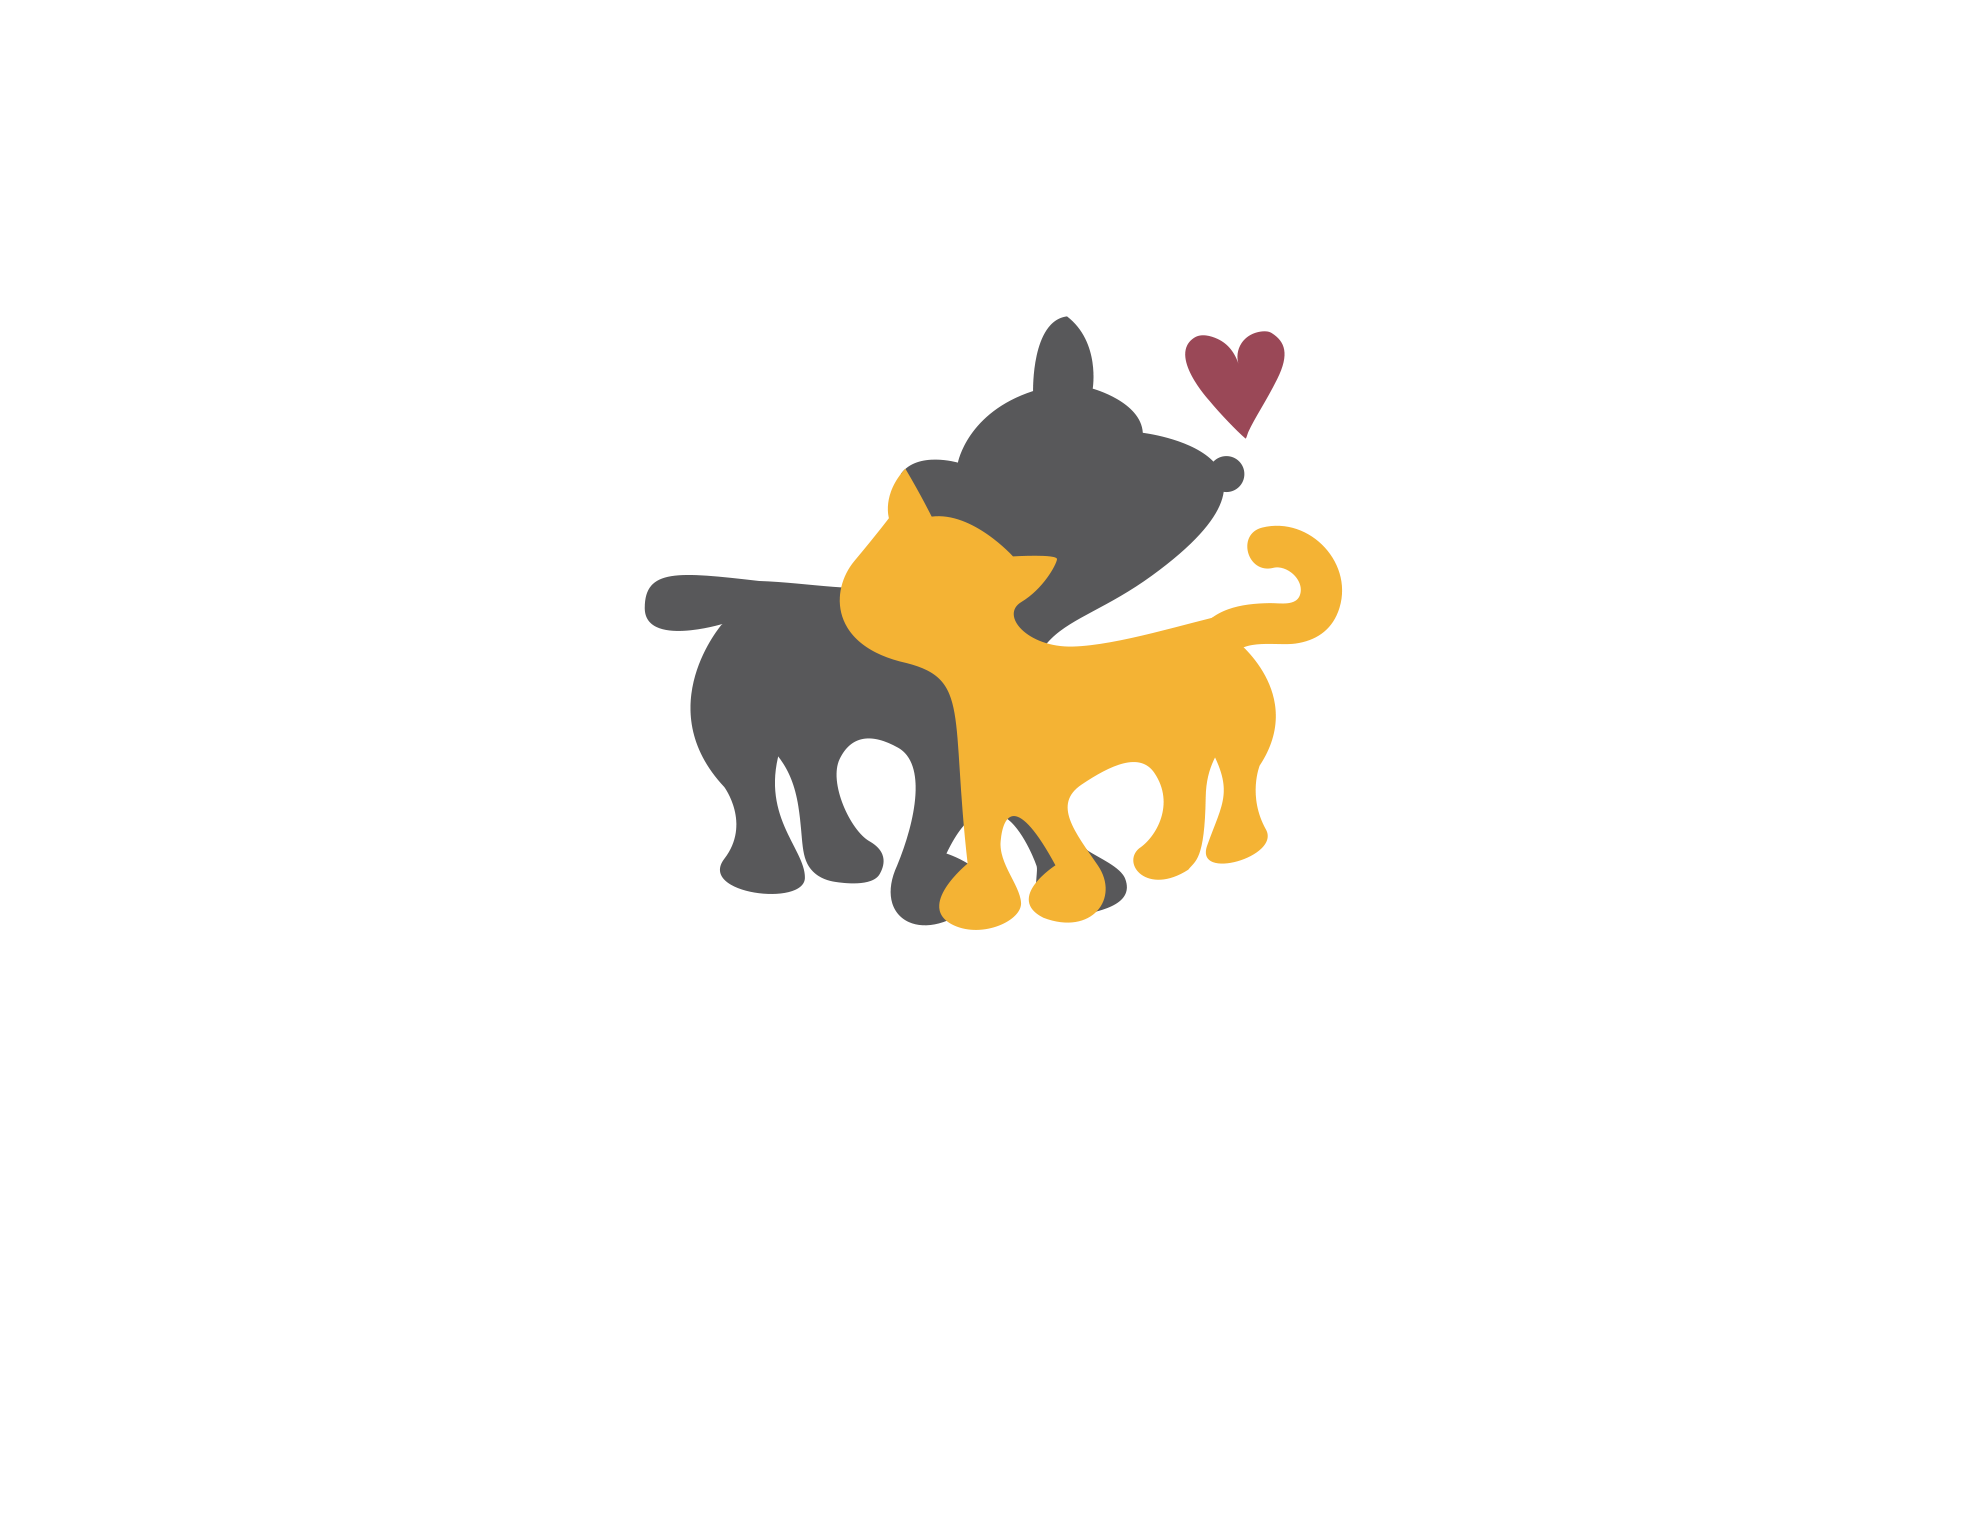 Angelica Cervantes Bienestar Animal